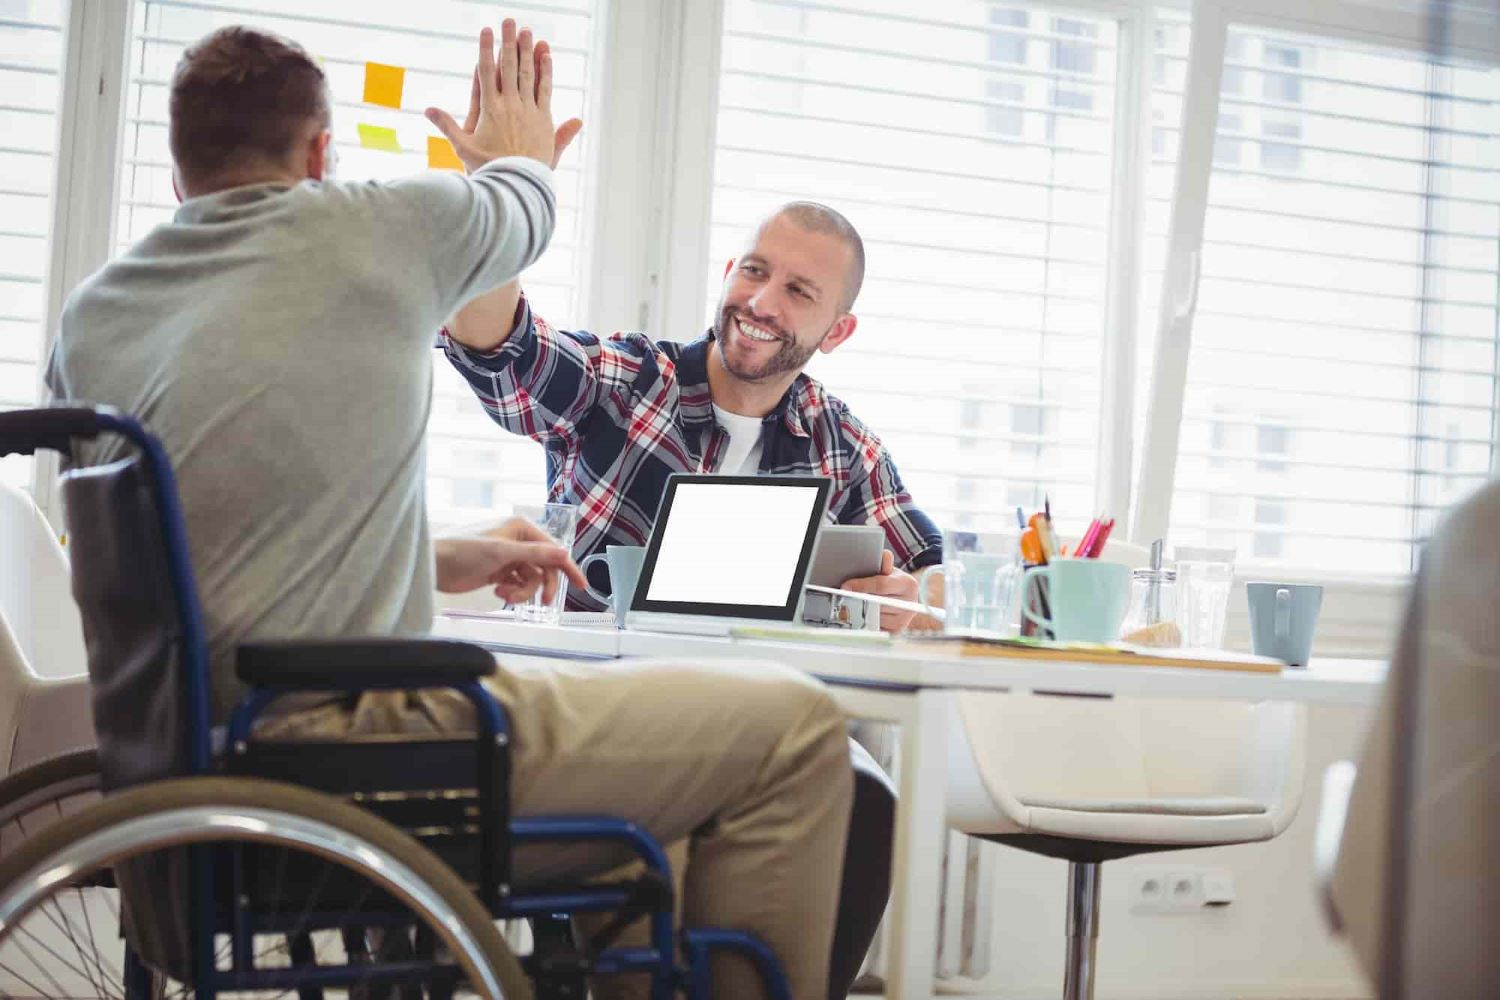 A man in a wheelchair and another man high fiving